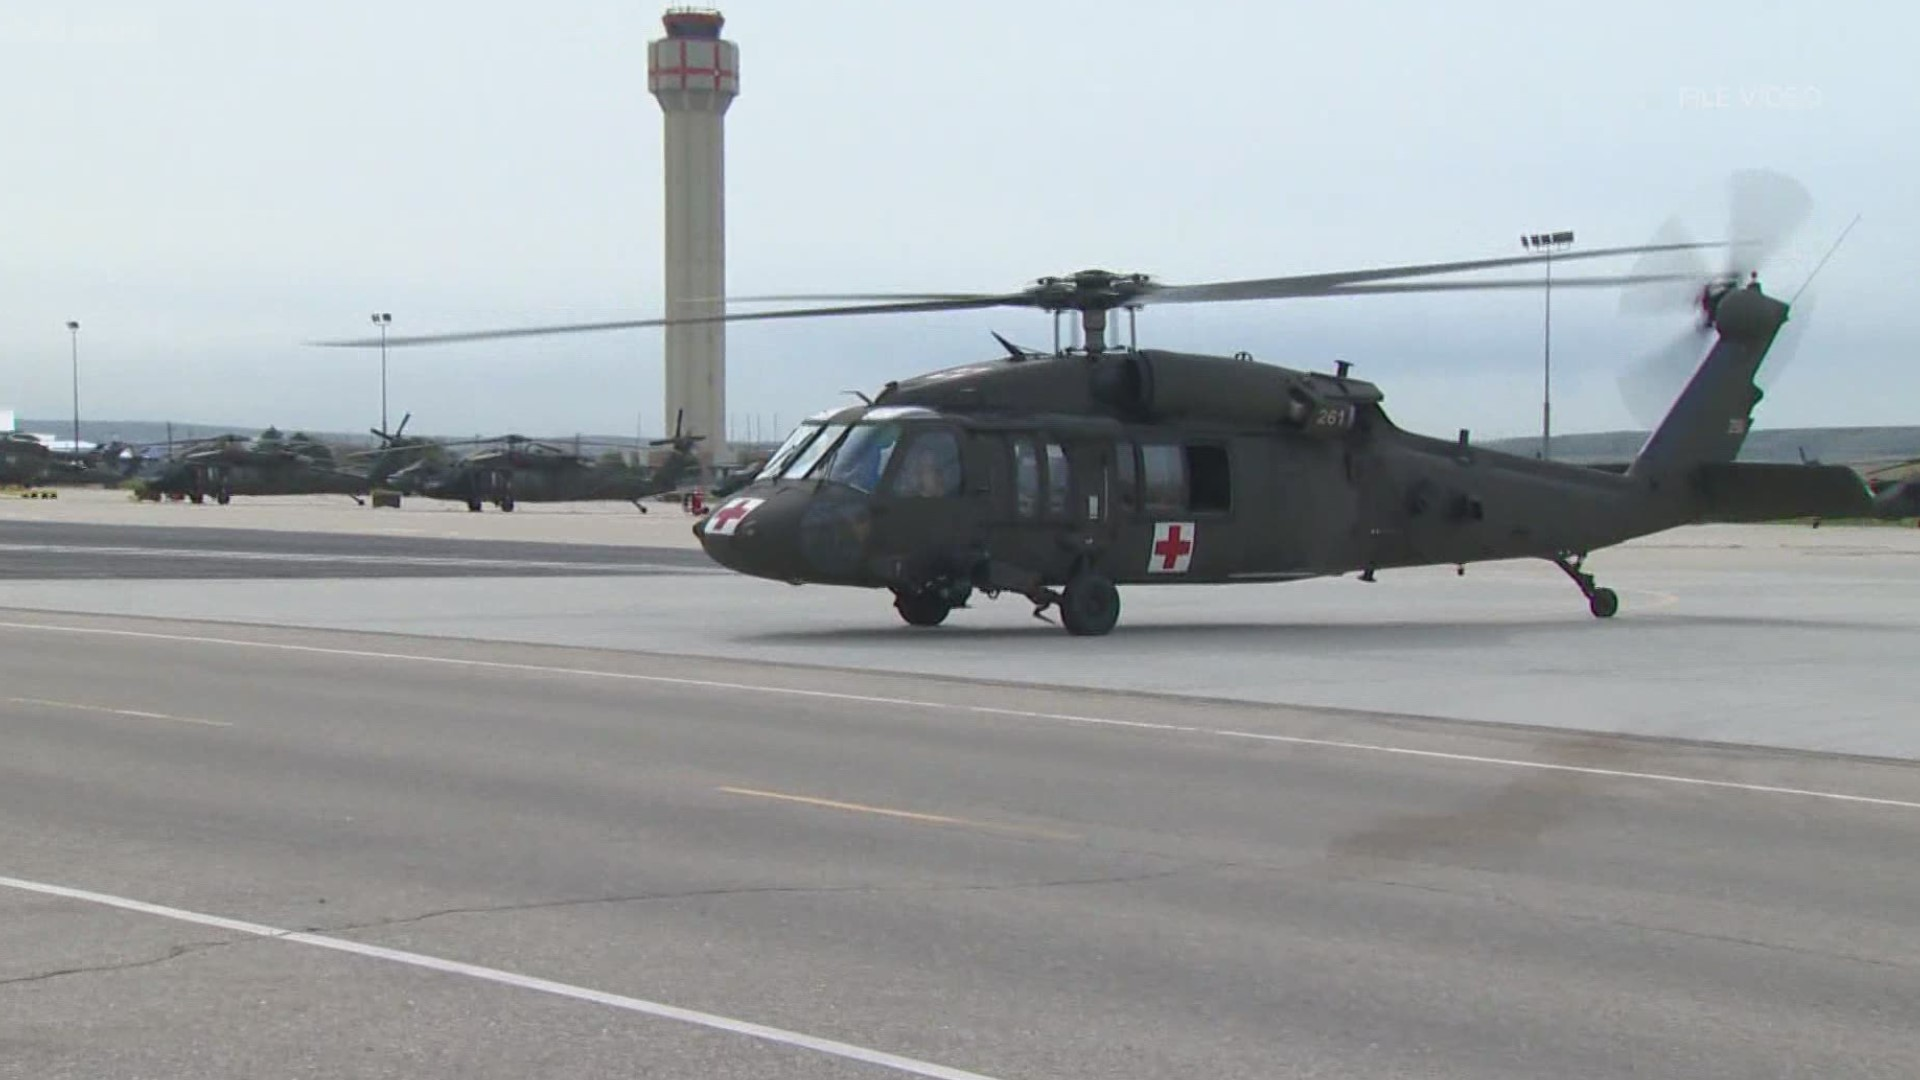 Three National Guard pilots killed in helicopter crash near Boise